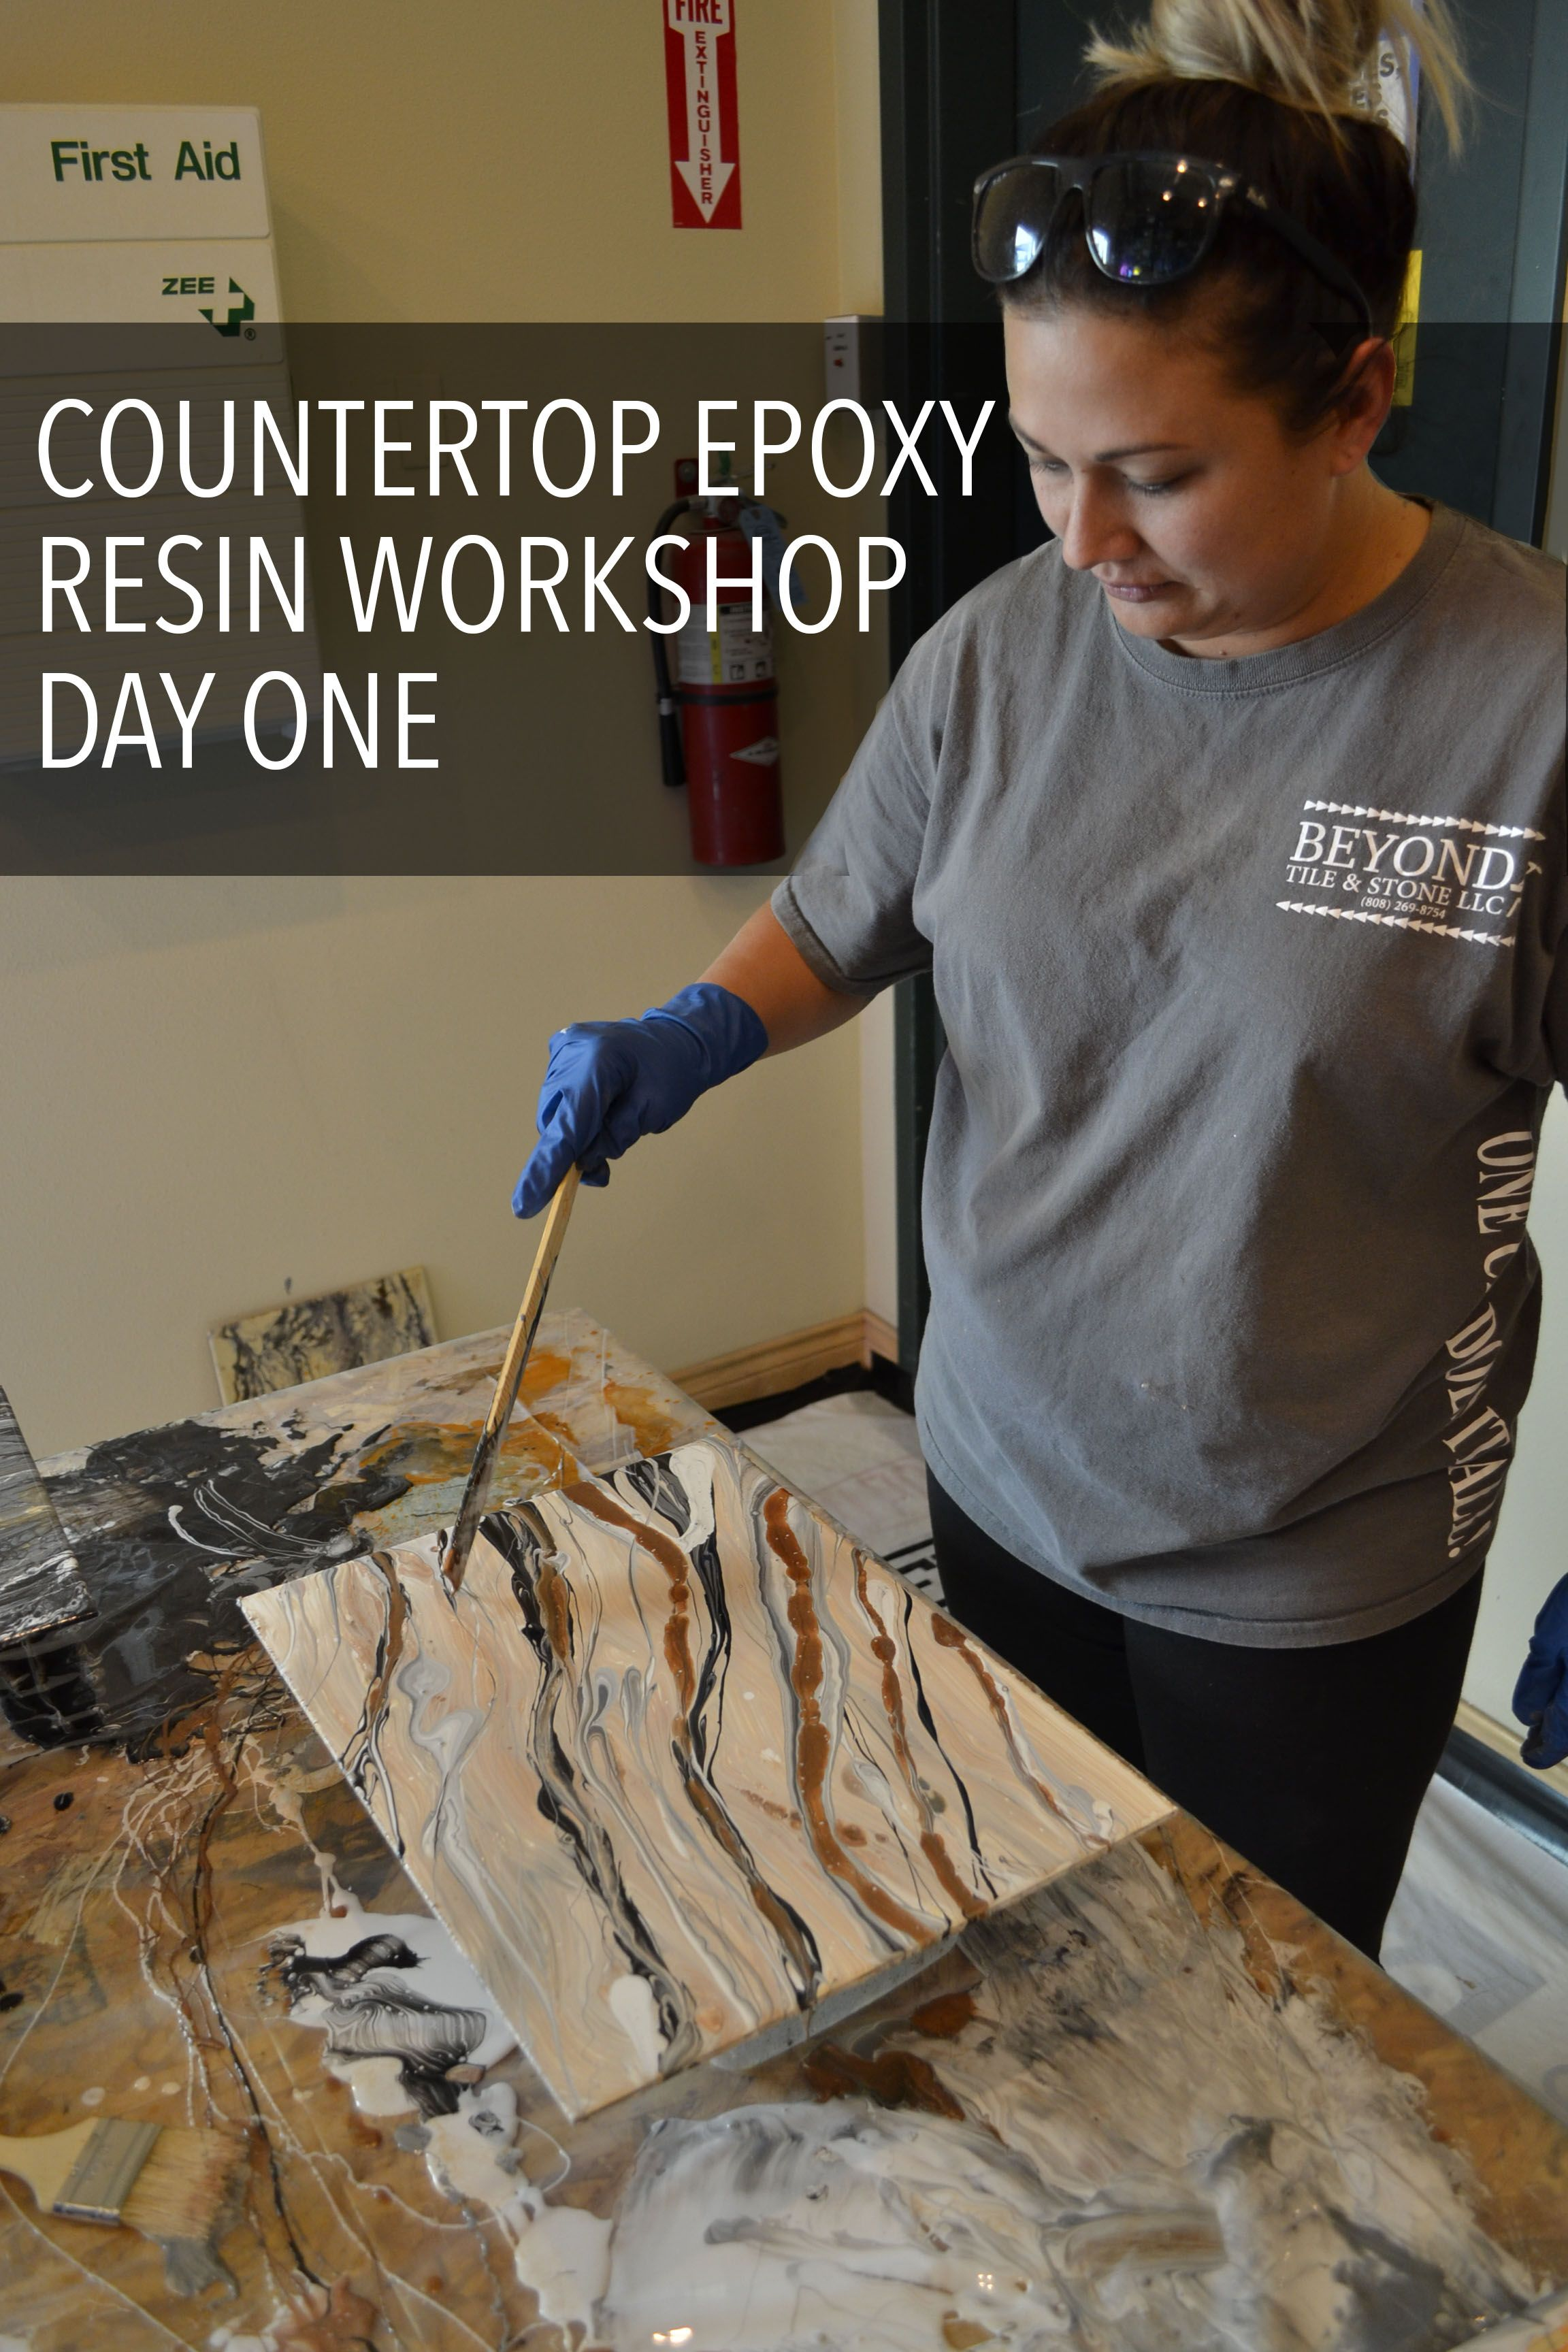 Countertop Epoxy Resin October 2017 Epoxy